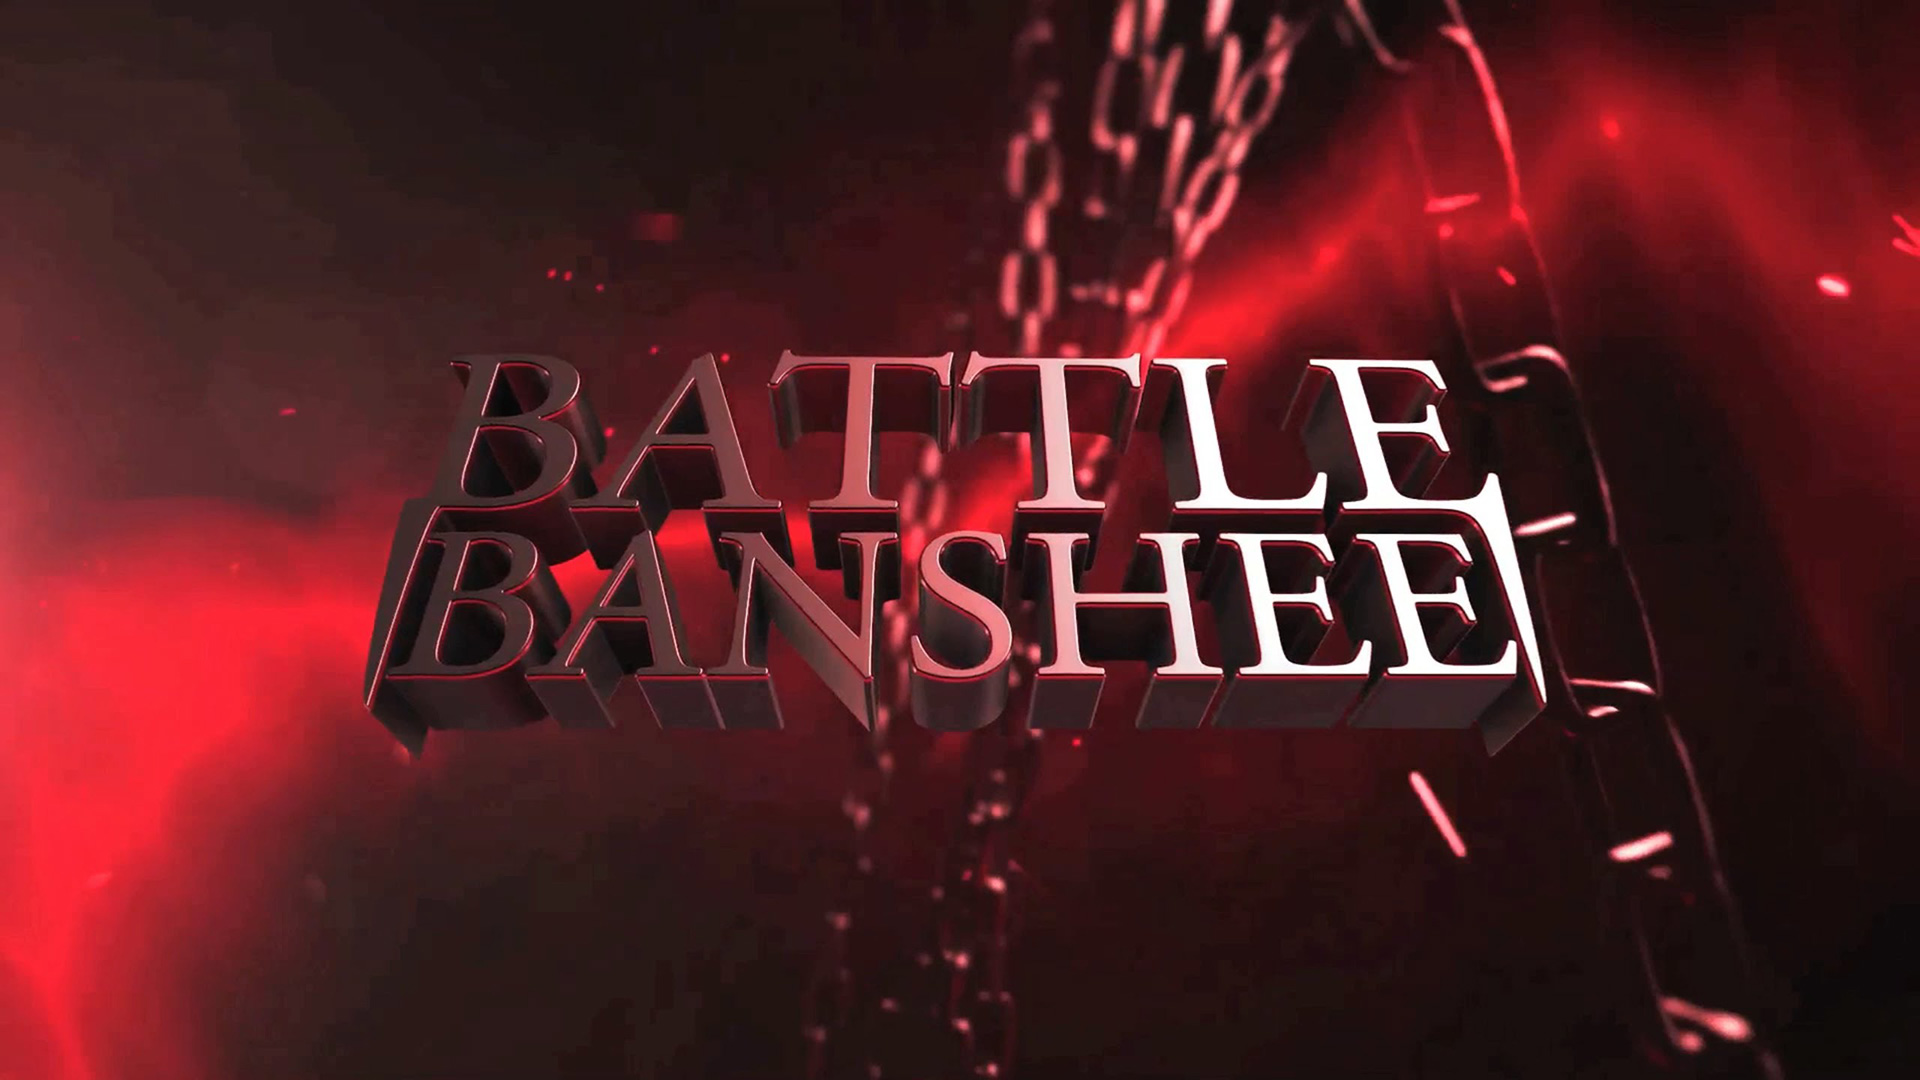 Battle Banshee - Teaser - Kevin Lapsley